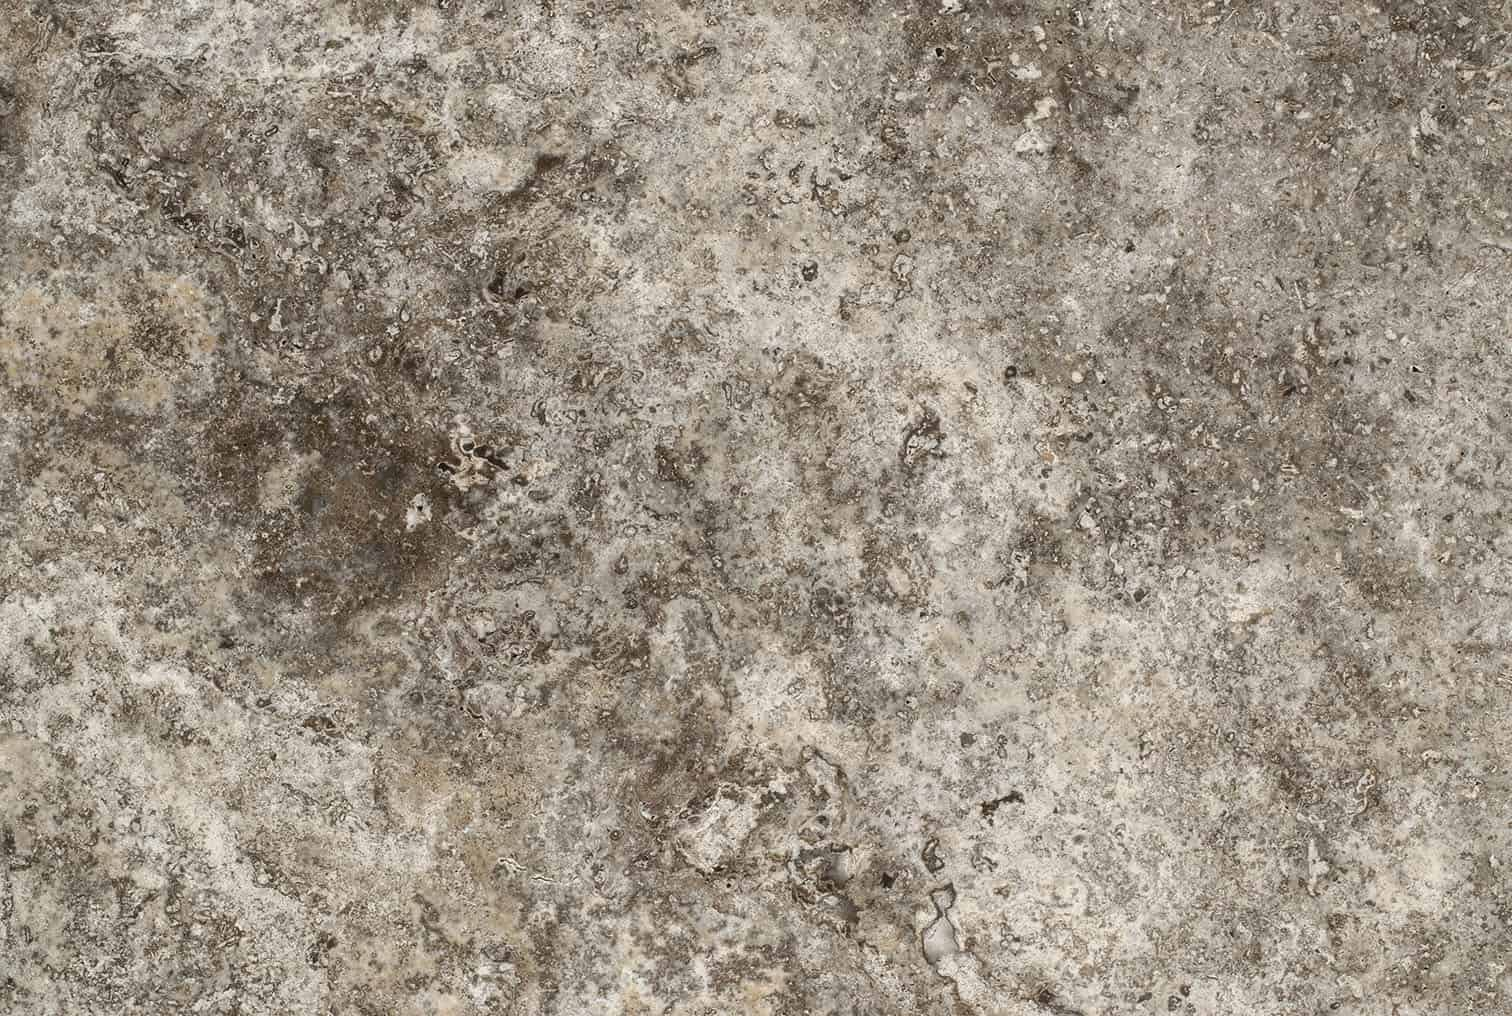 travertino-turco-silver-gris-plata-plateado-cross-cut.jpg